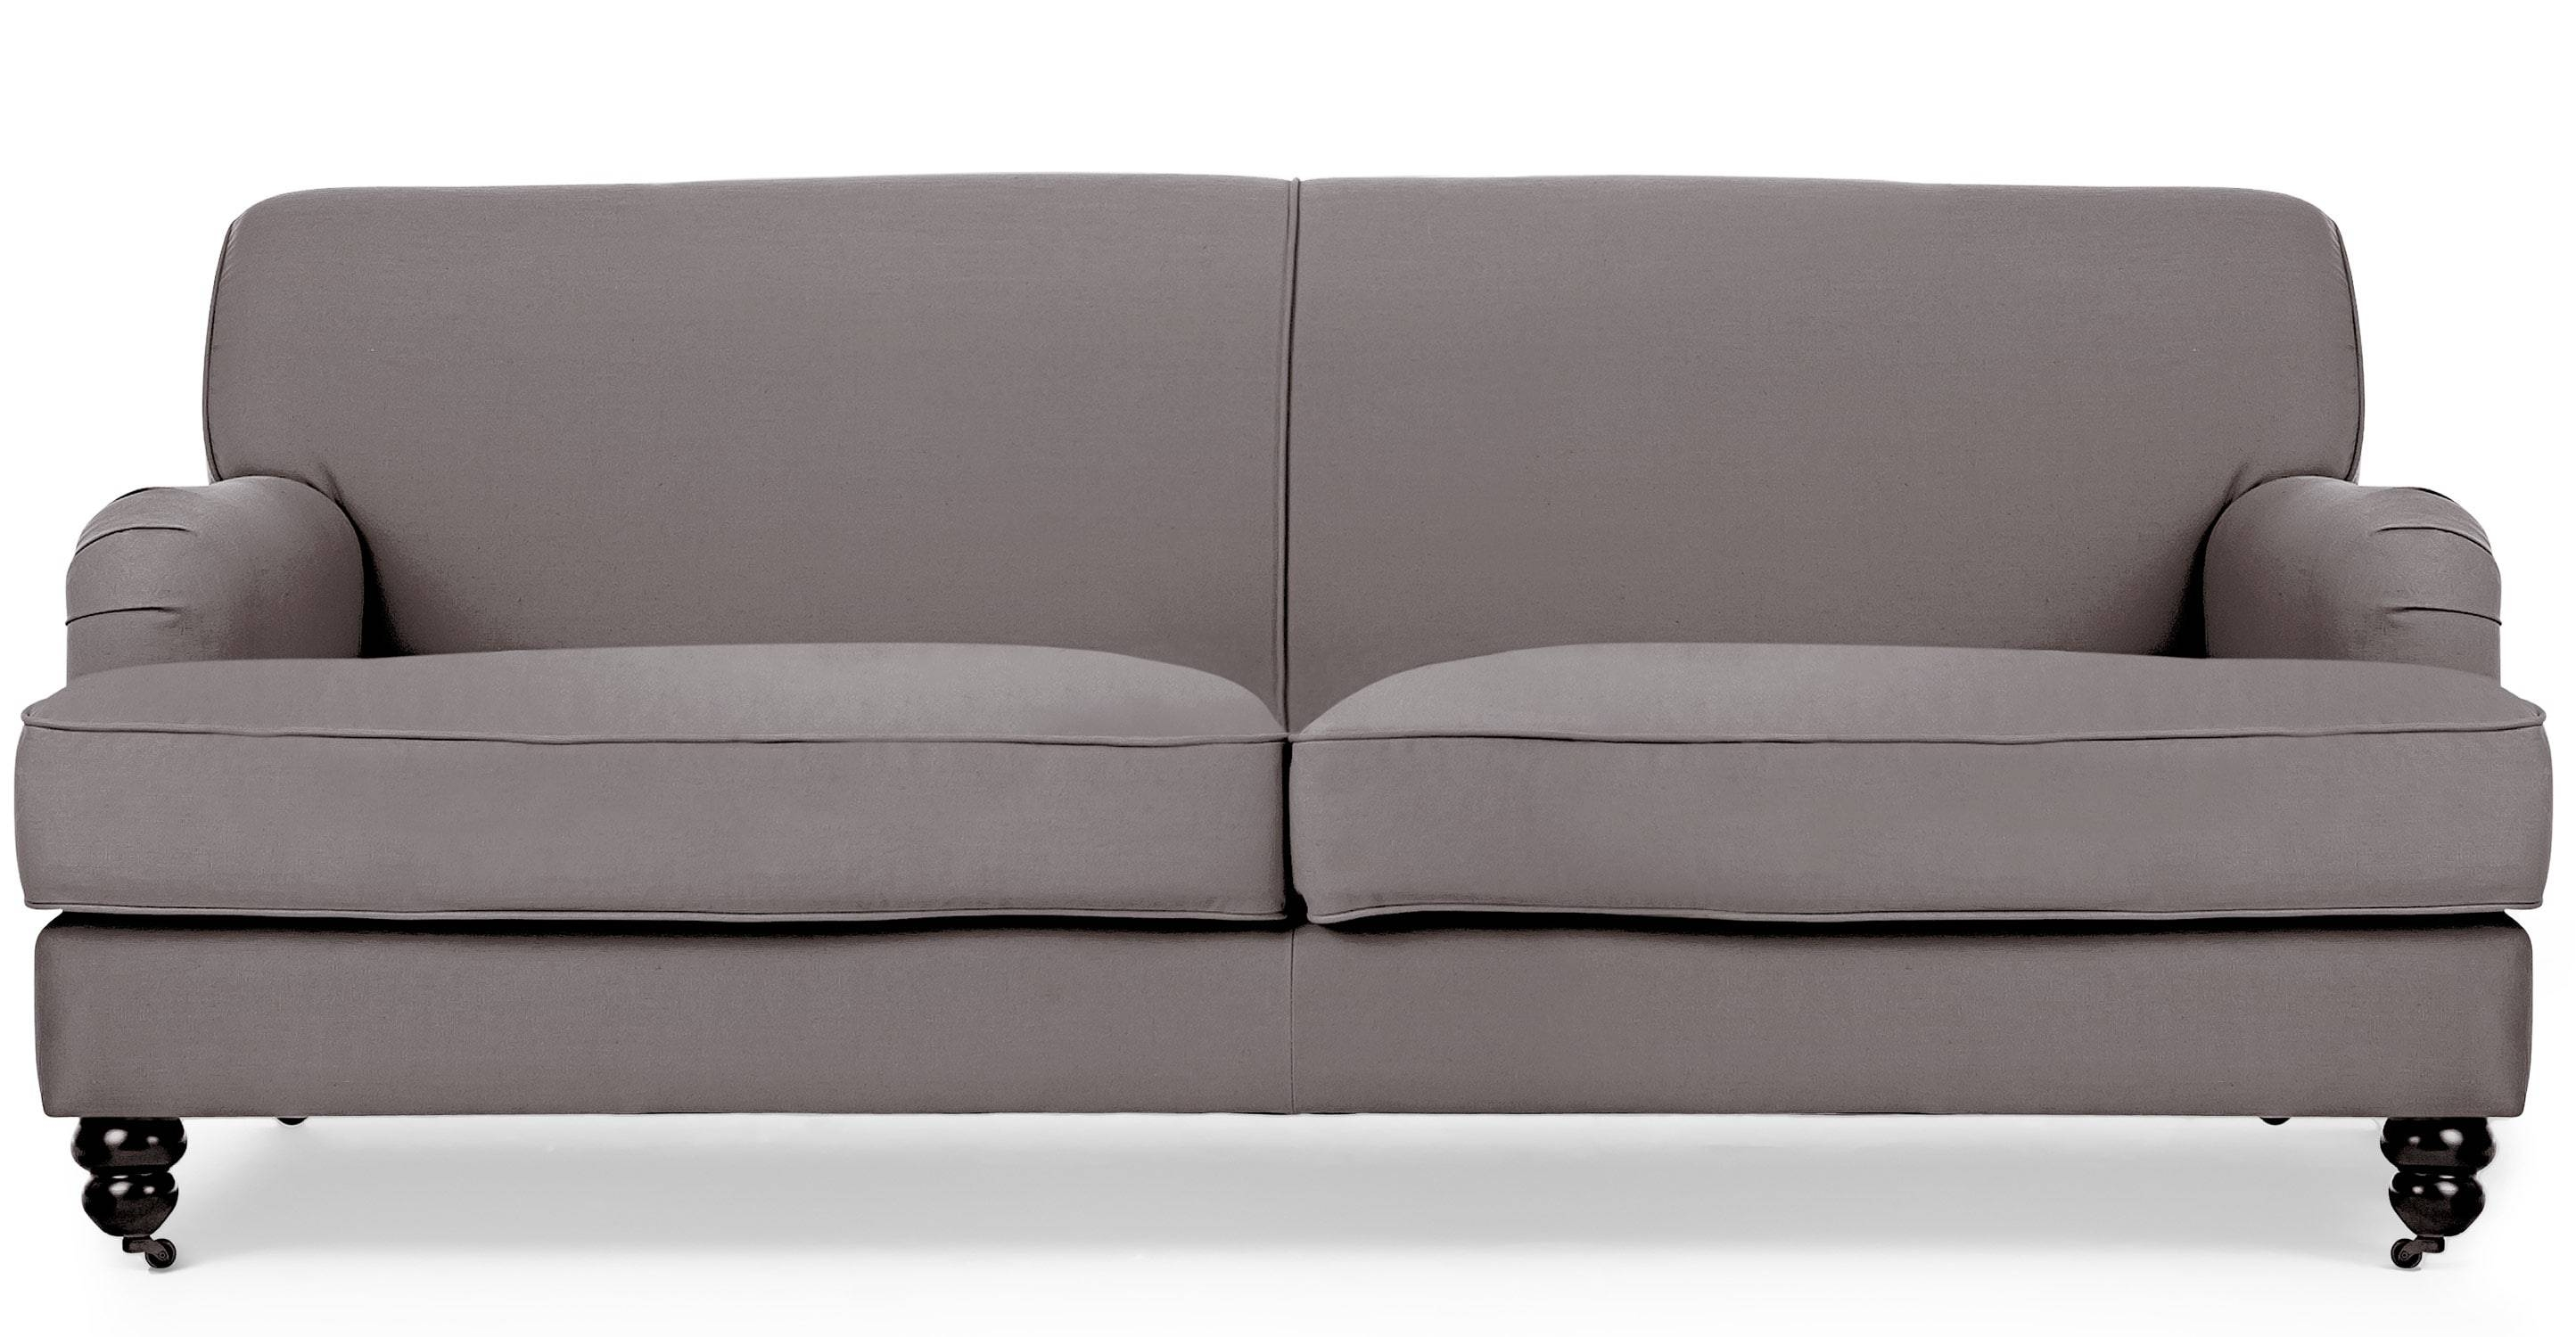 Orson 3 Seater Sofa, Graphite Grey | Made intended for Three Seater Sofas (Image 23 of 30)